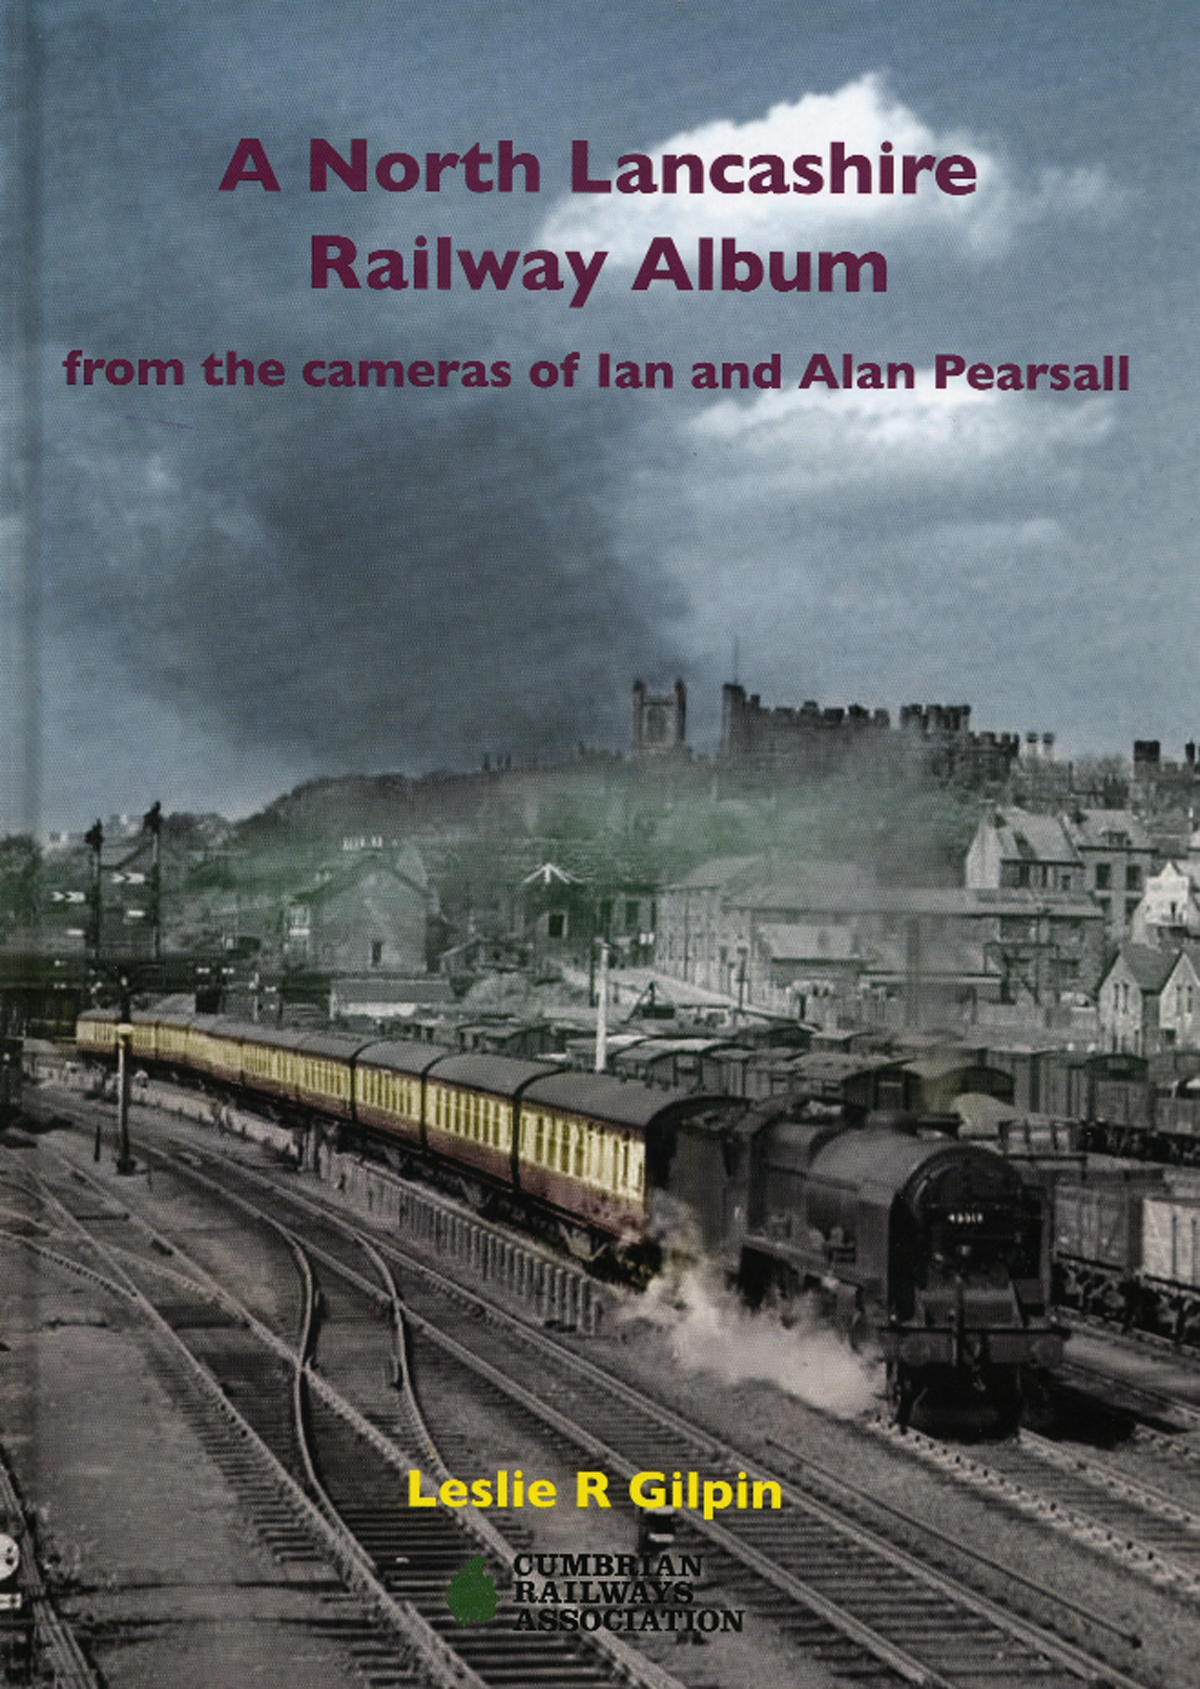 A North Lancashire Railway Album